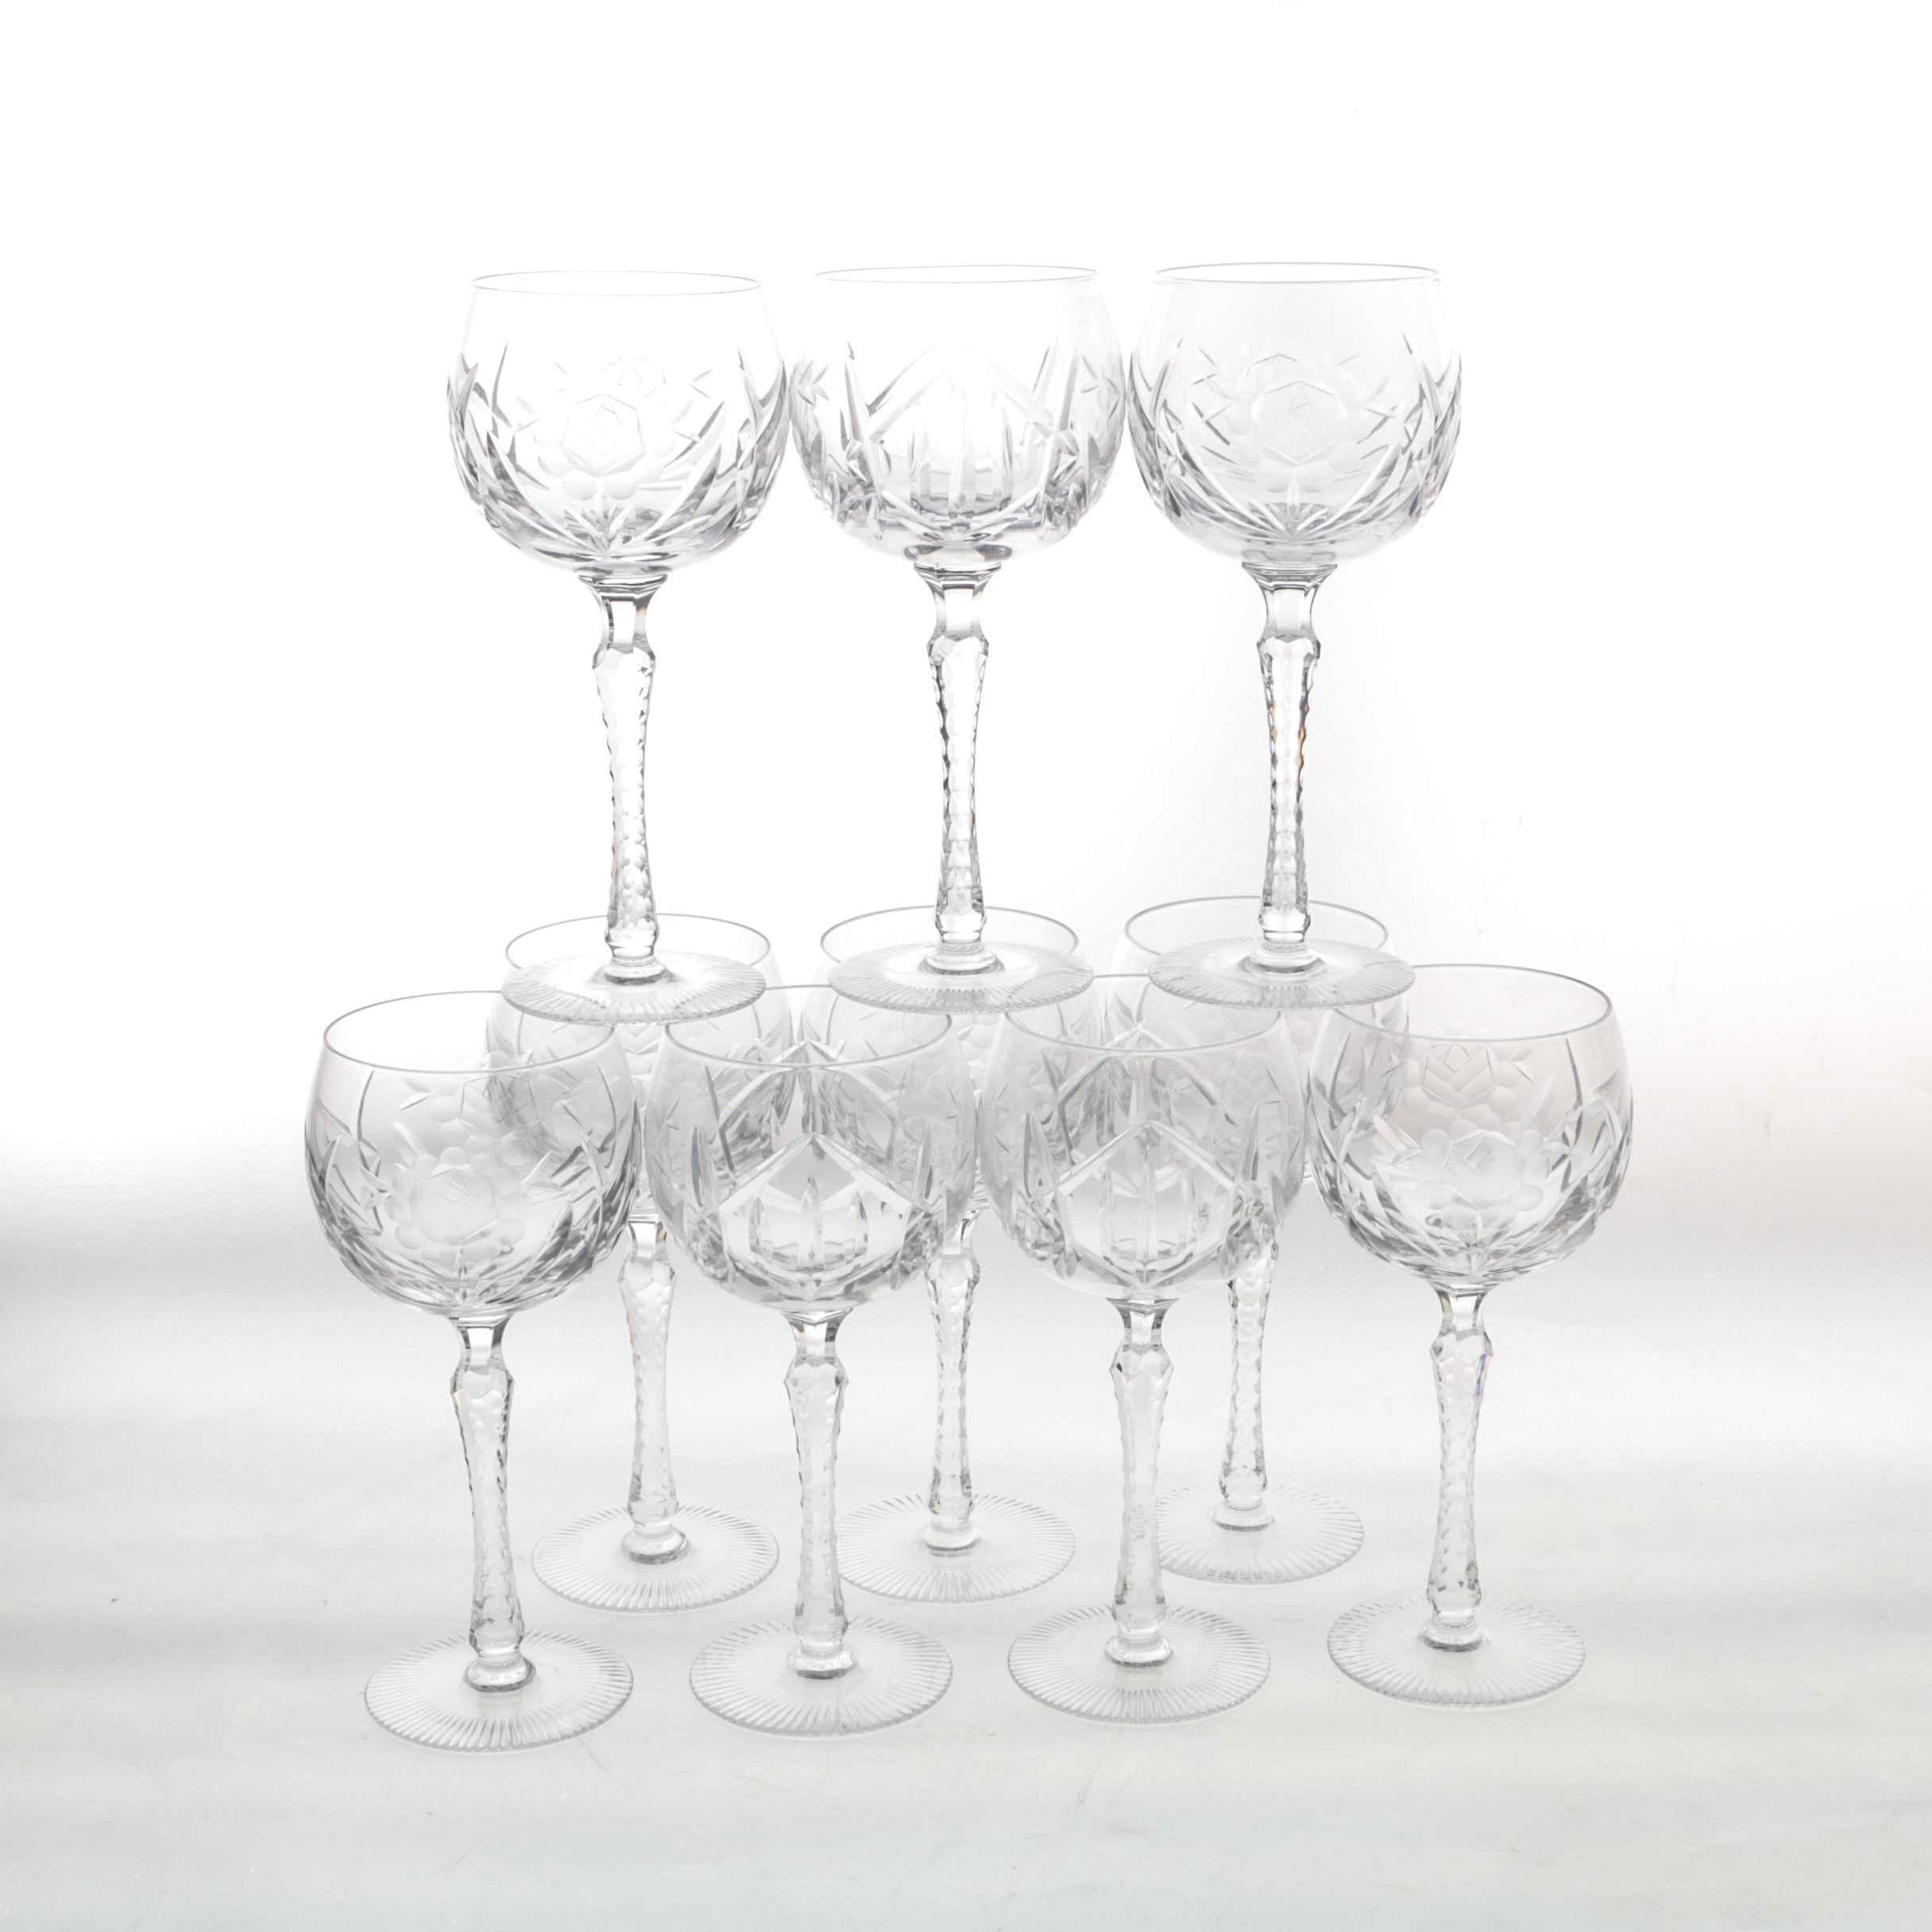 Hand-Cut Crystal Hock Wine Glasses